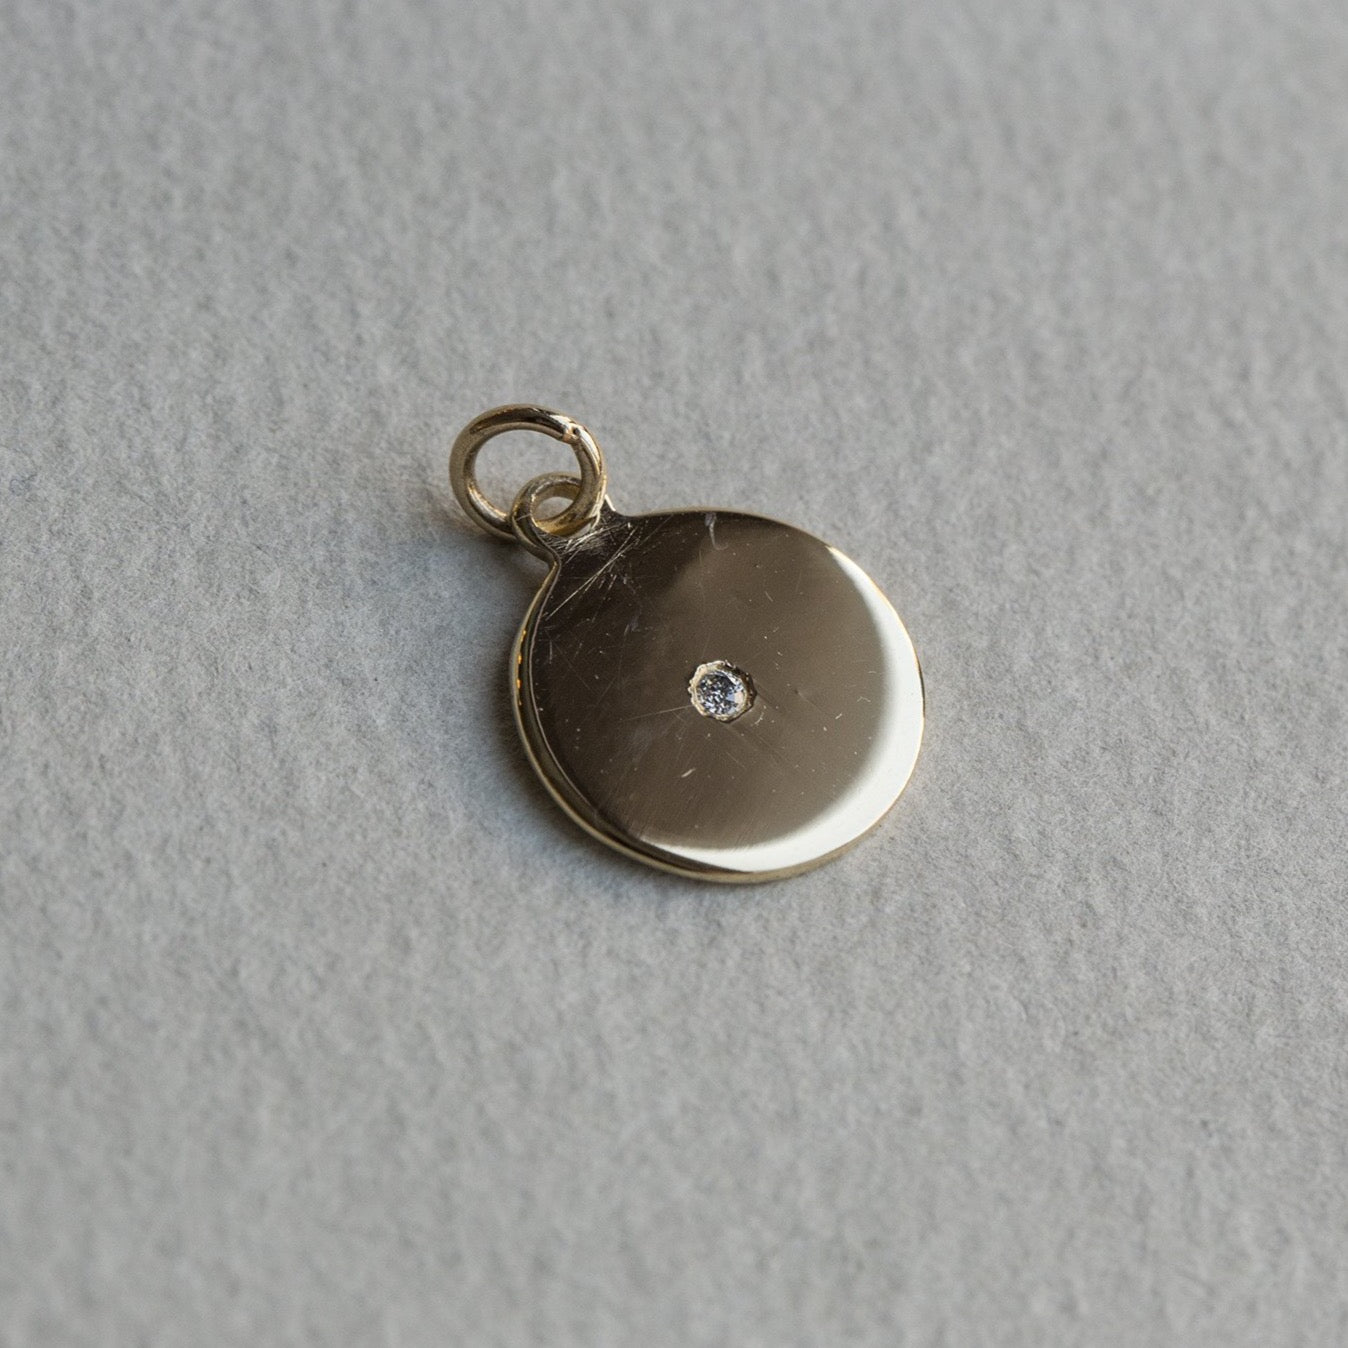 felt's own design - incredibly simple and enchanting polished gold disc with diamond